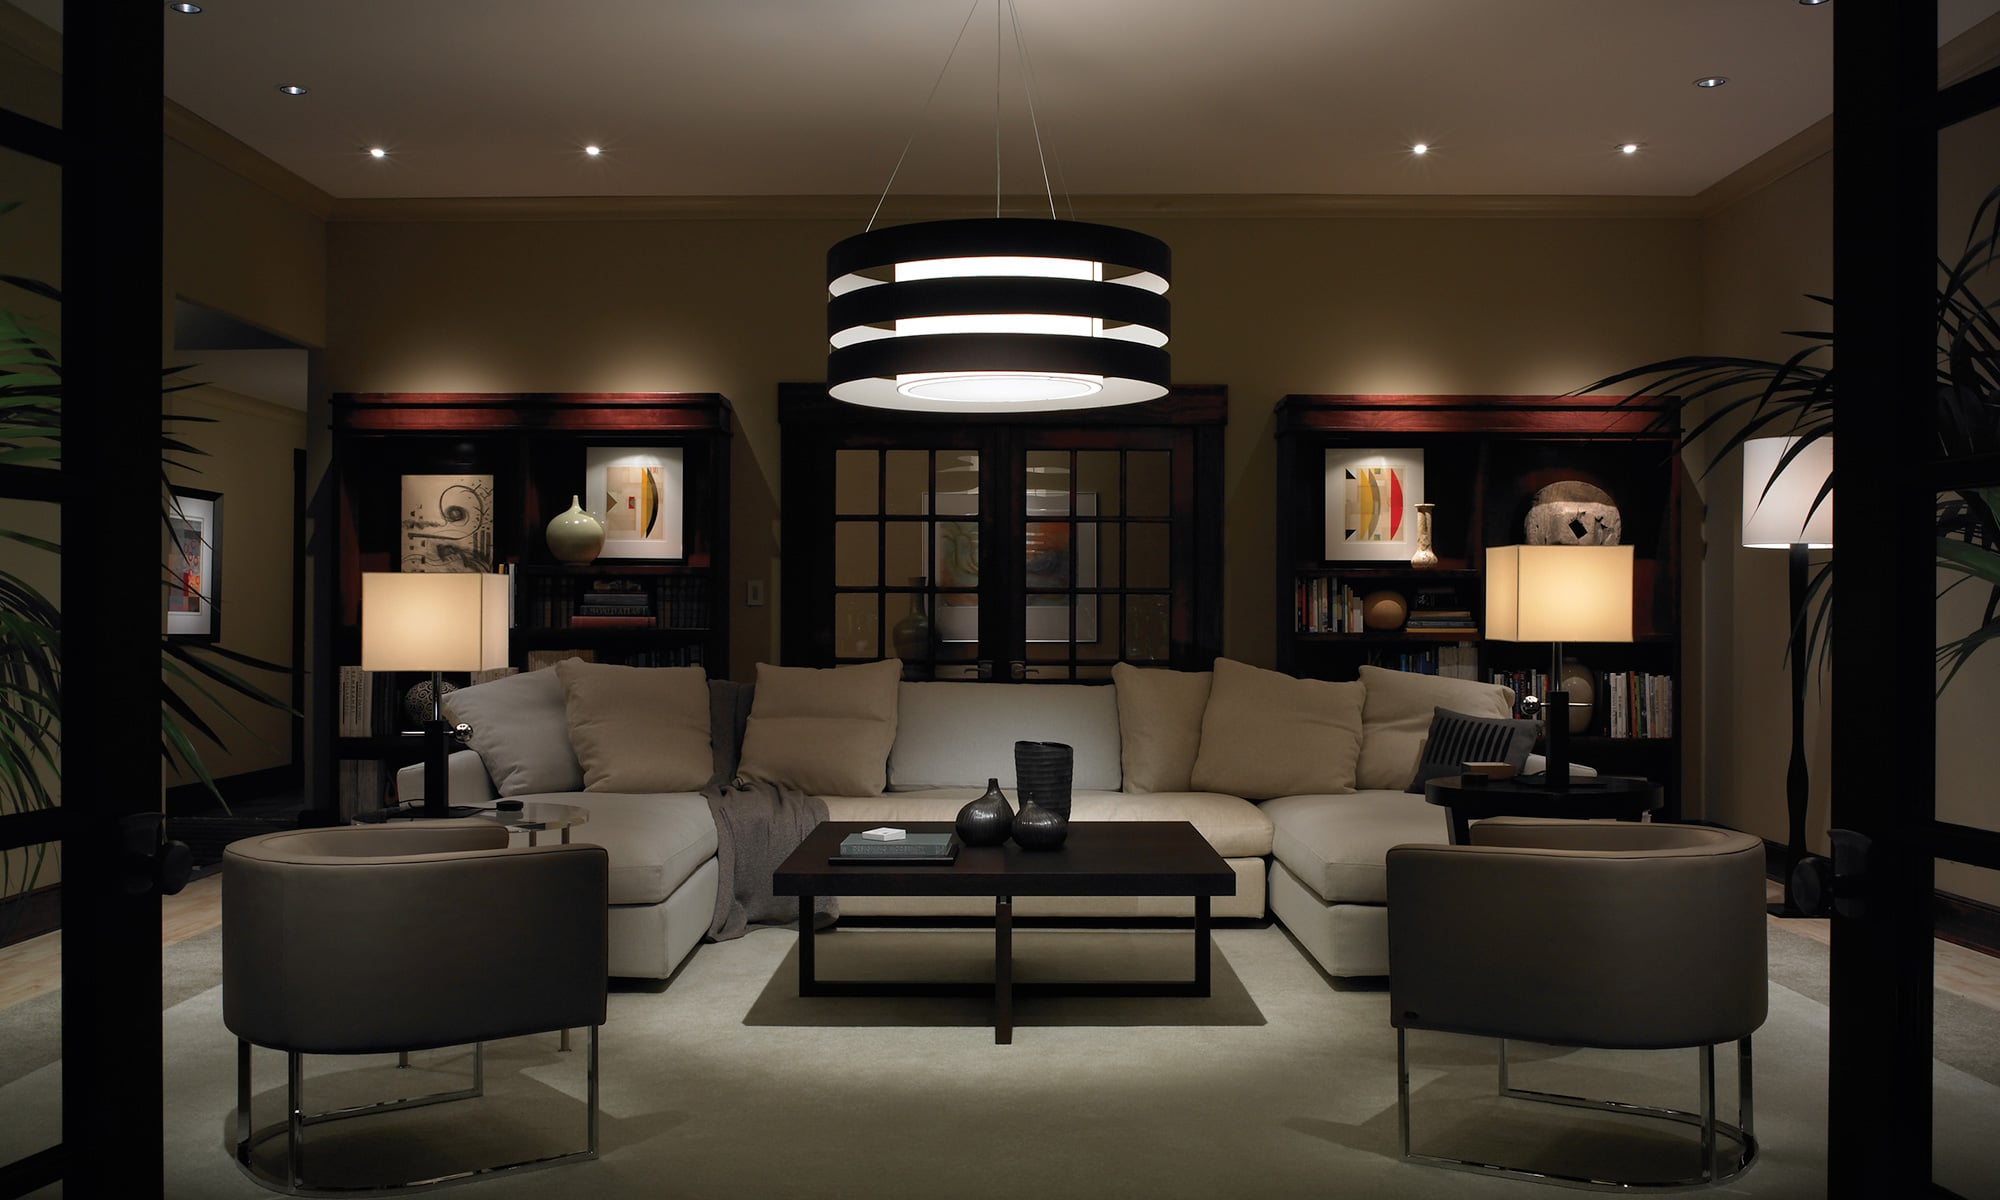 Lutron Set the Perfect Scene for Any Occasion with Intelligent Lighting Control from London's Top Lutron Dealer